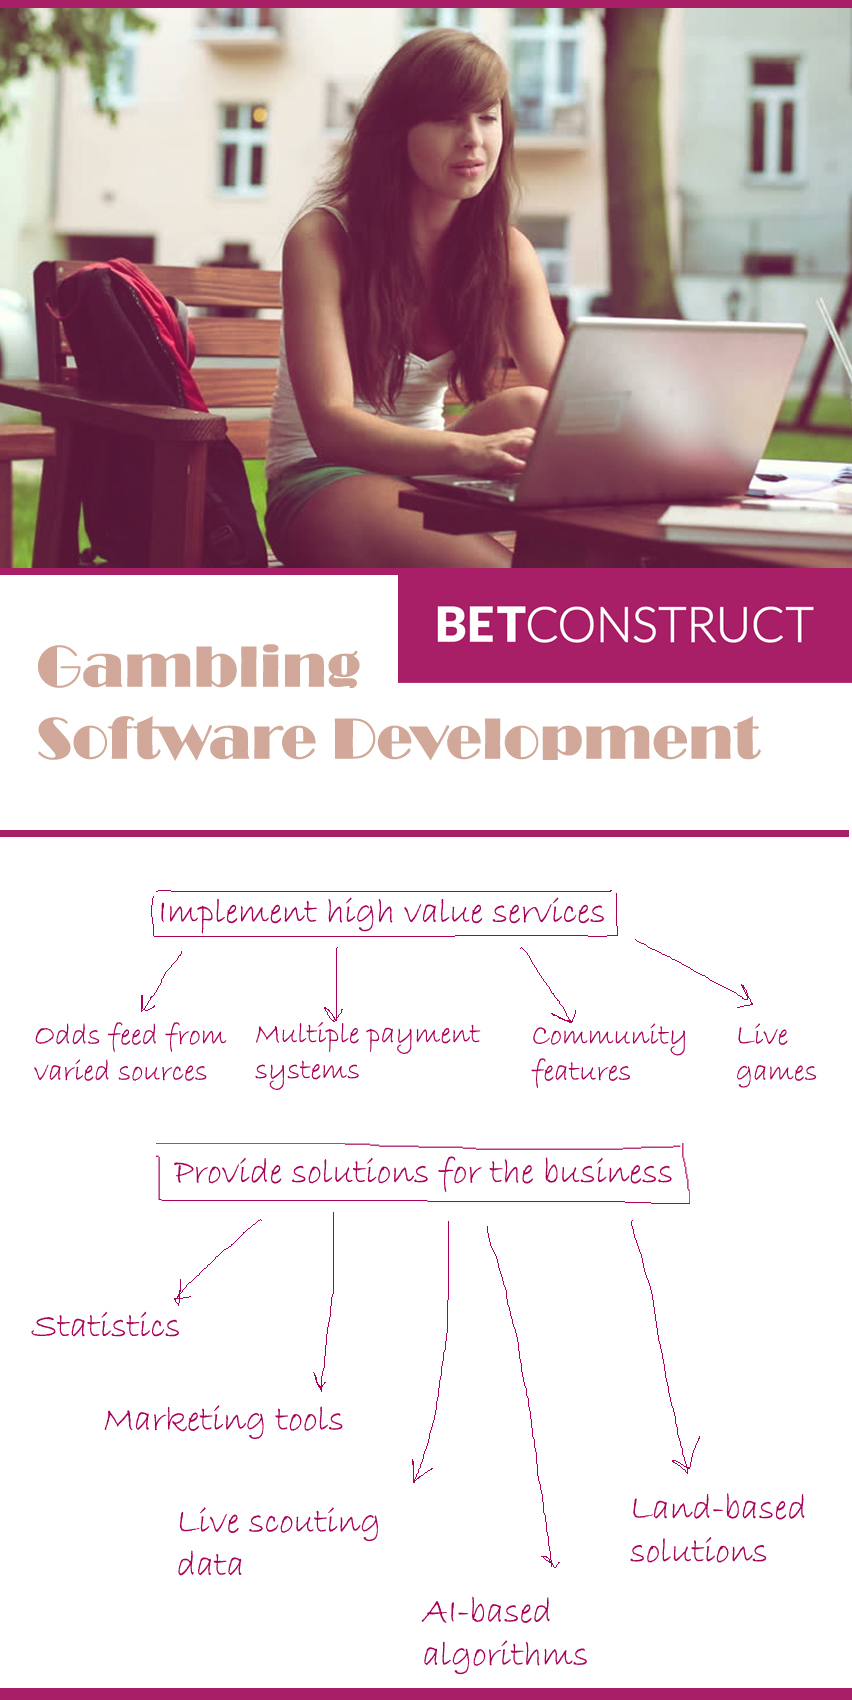 Opportunities and Prospects of Gambling Software Development